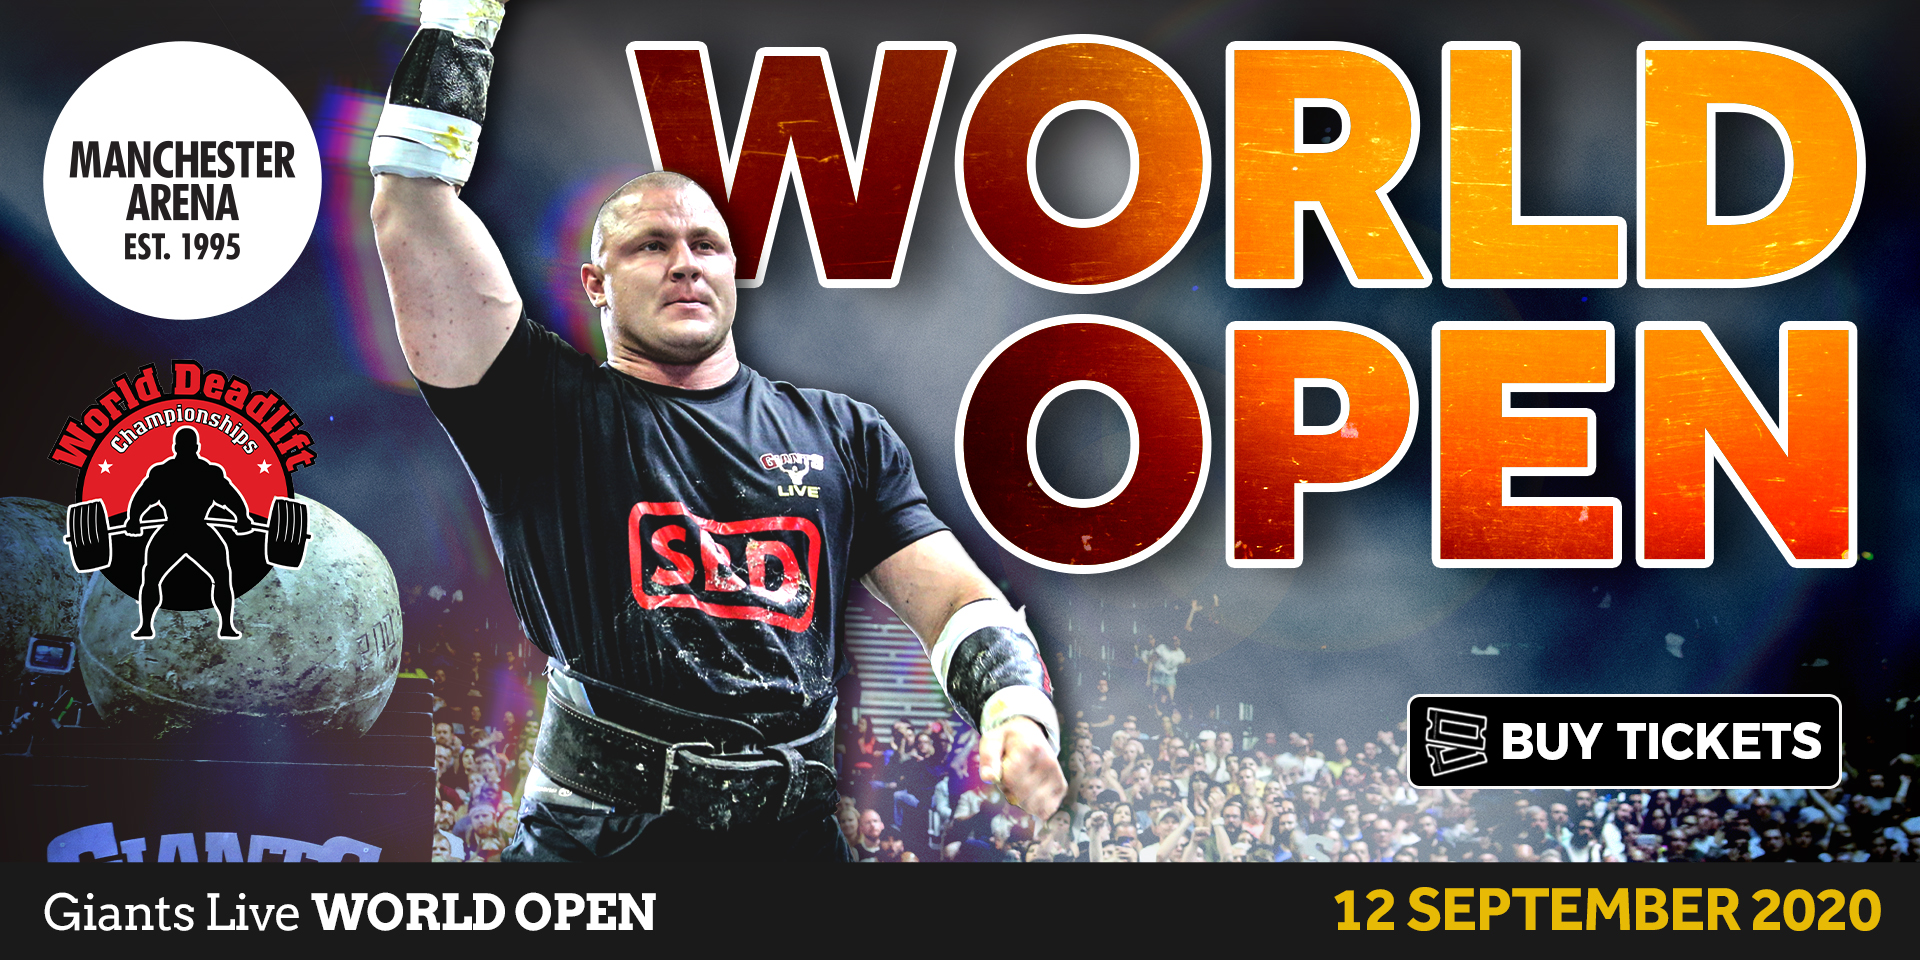 The Giants return to Manchester in 2020 for the Giants Live World Open including the World Deadlift Championships!